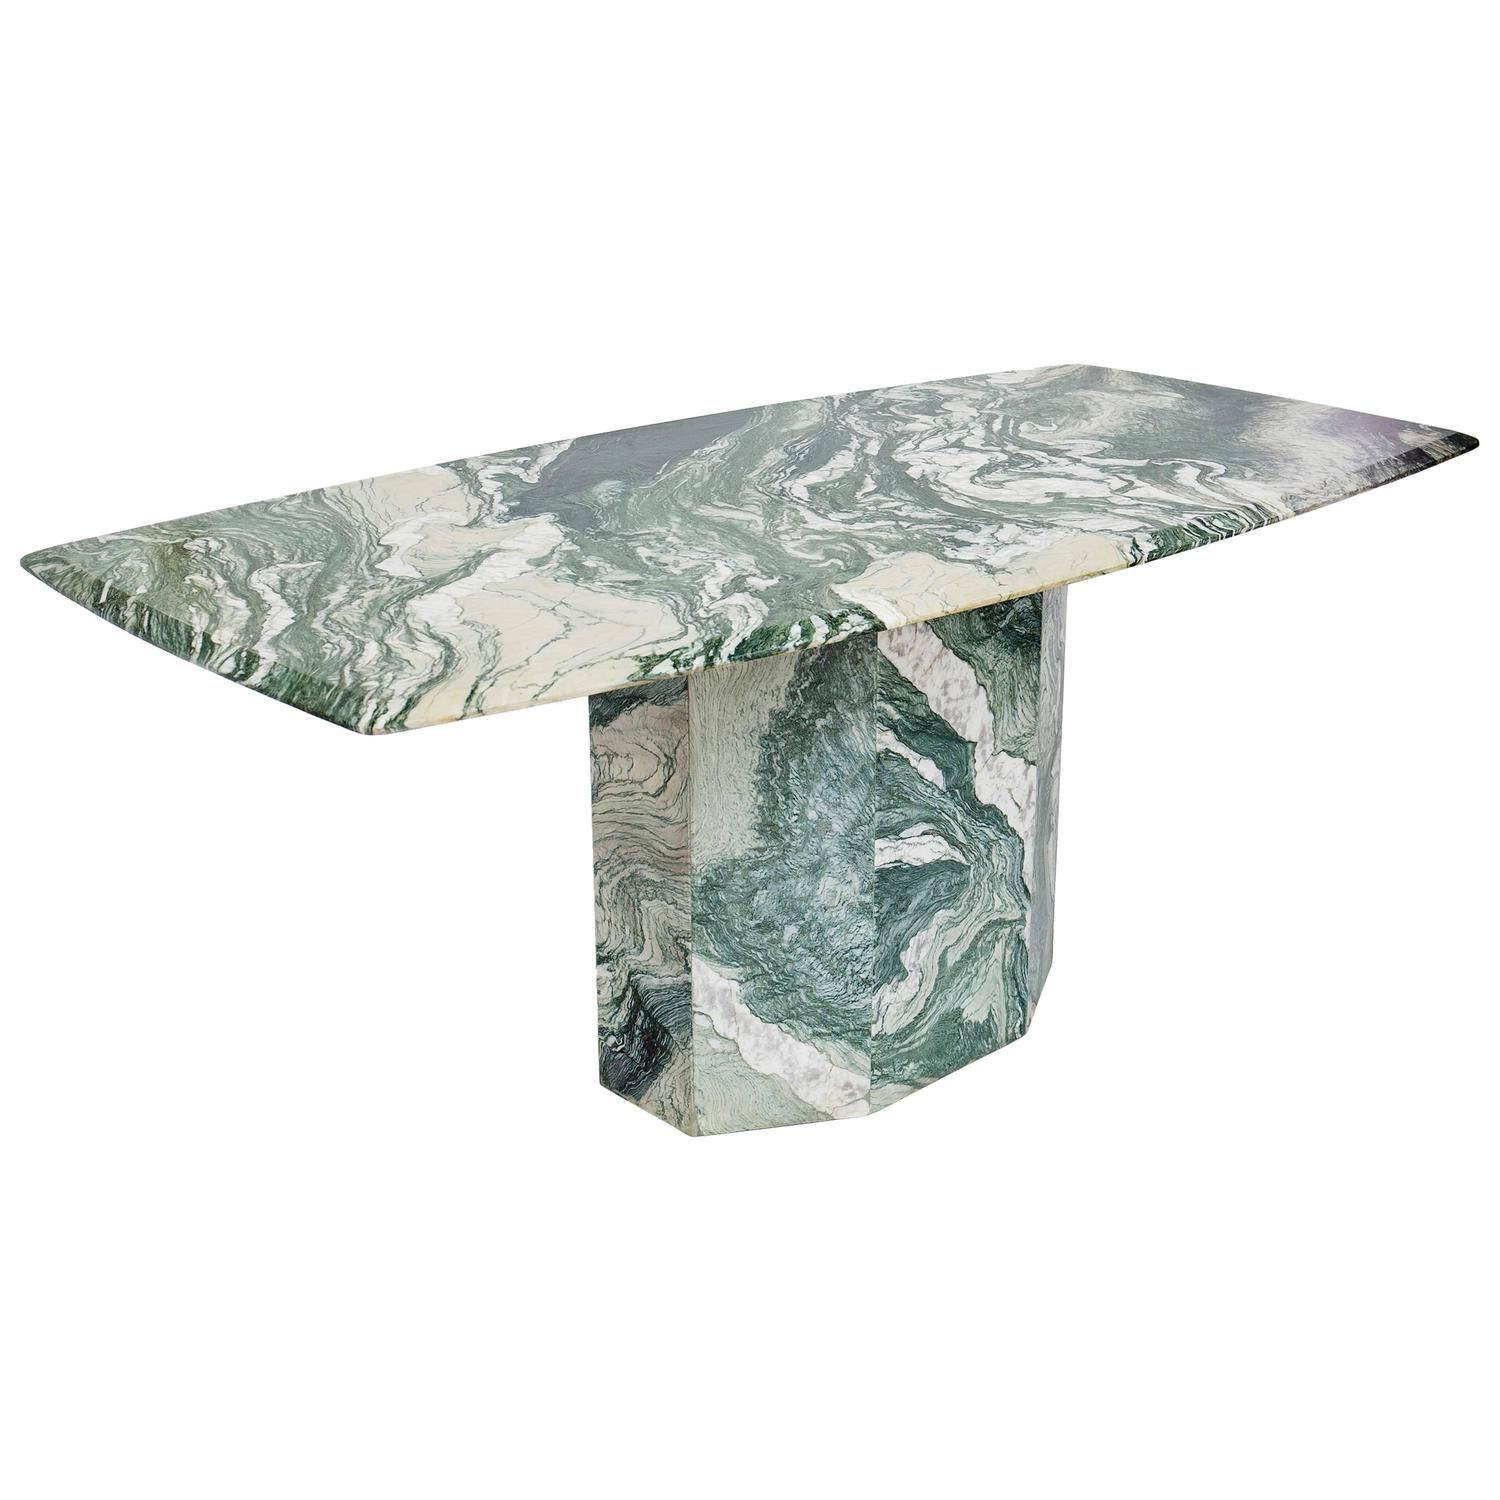 Verde Luana Marble-Top And Base Dining Table